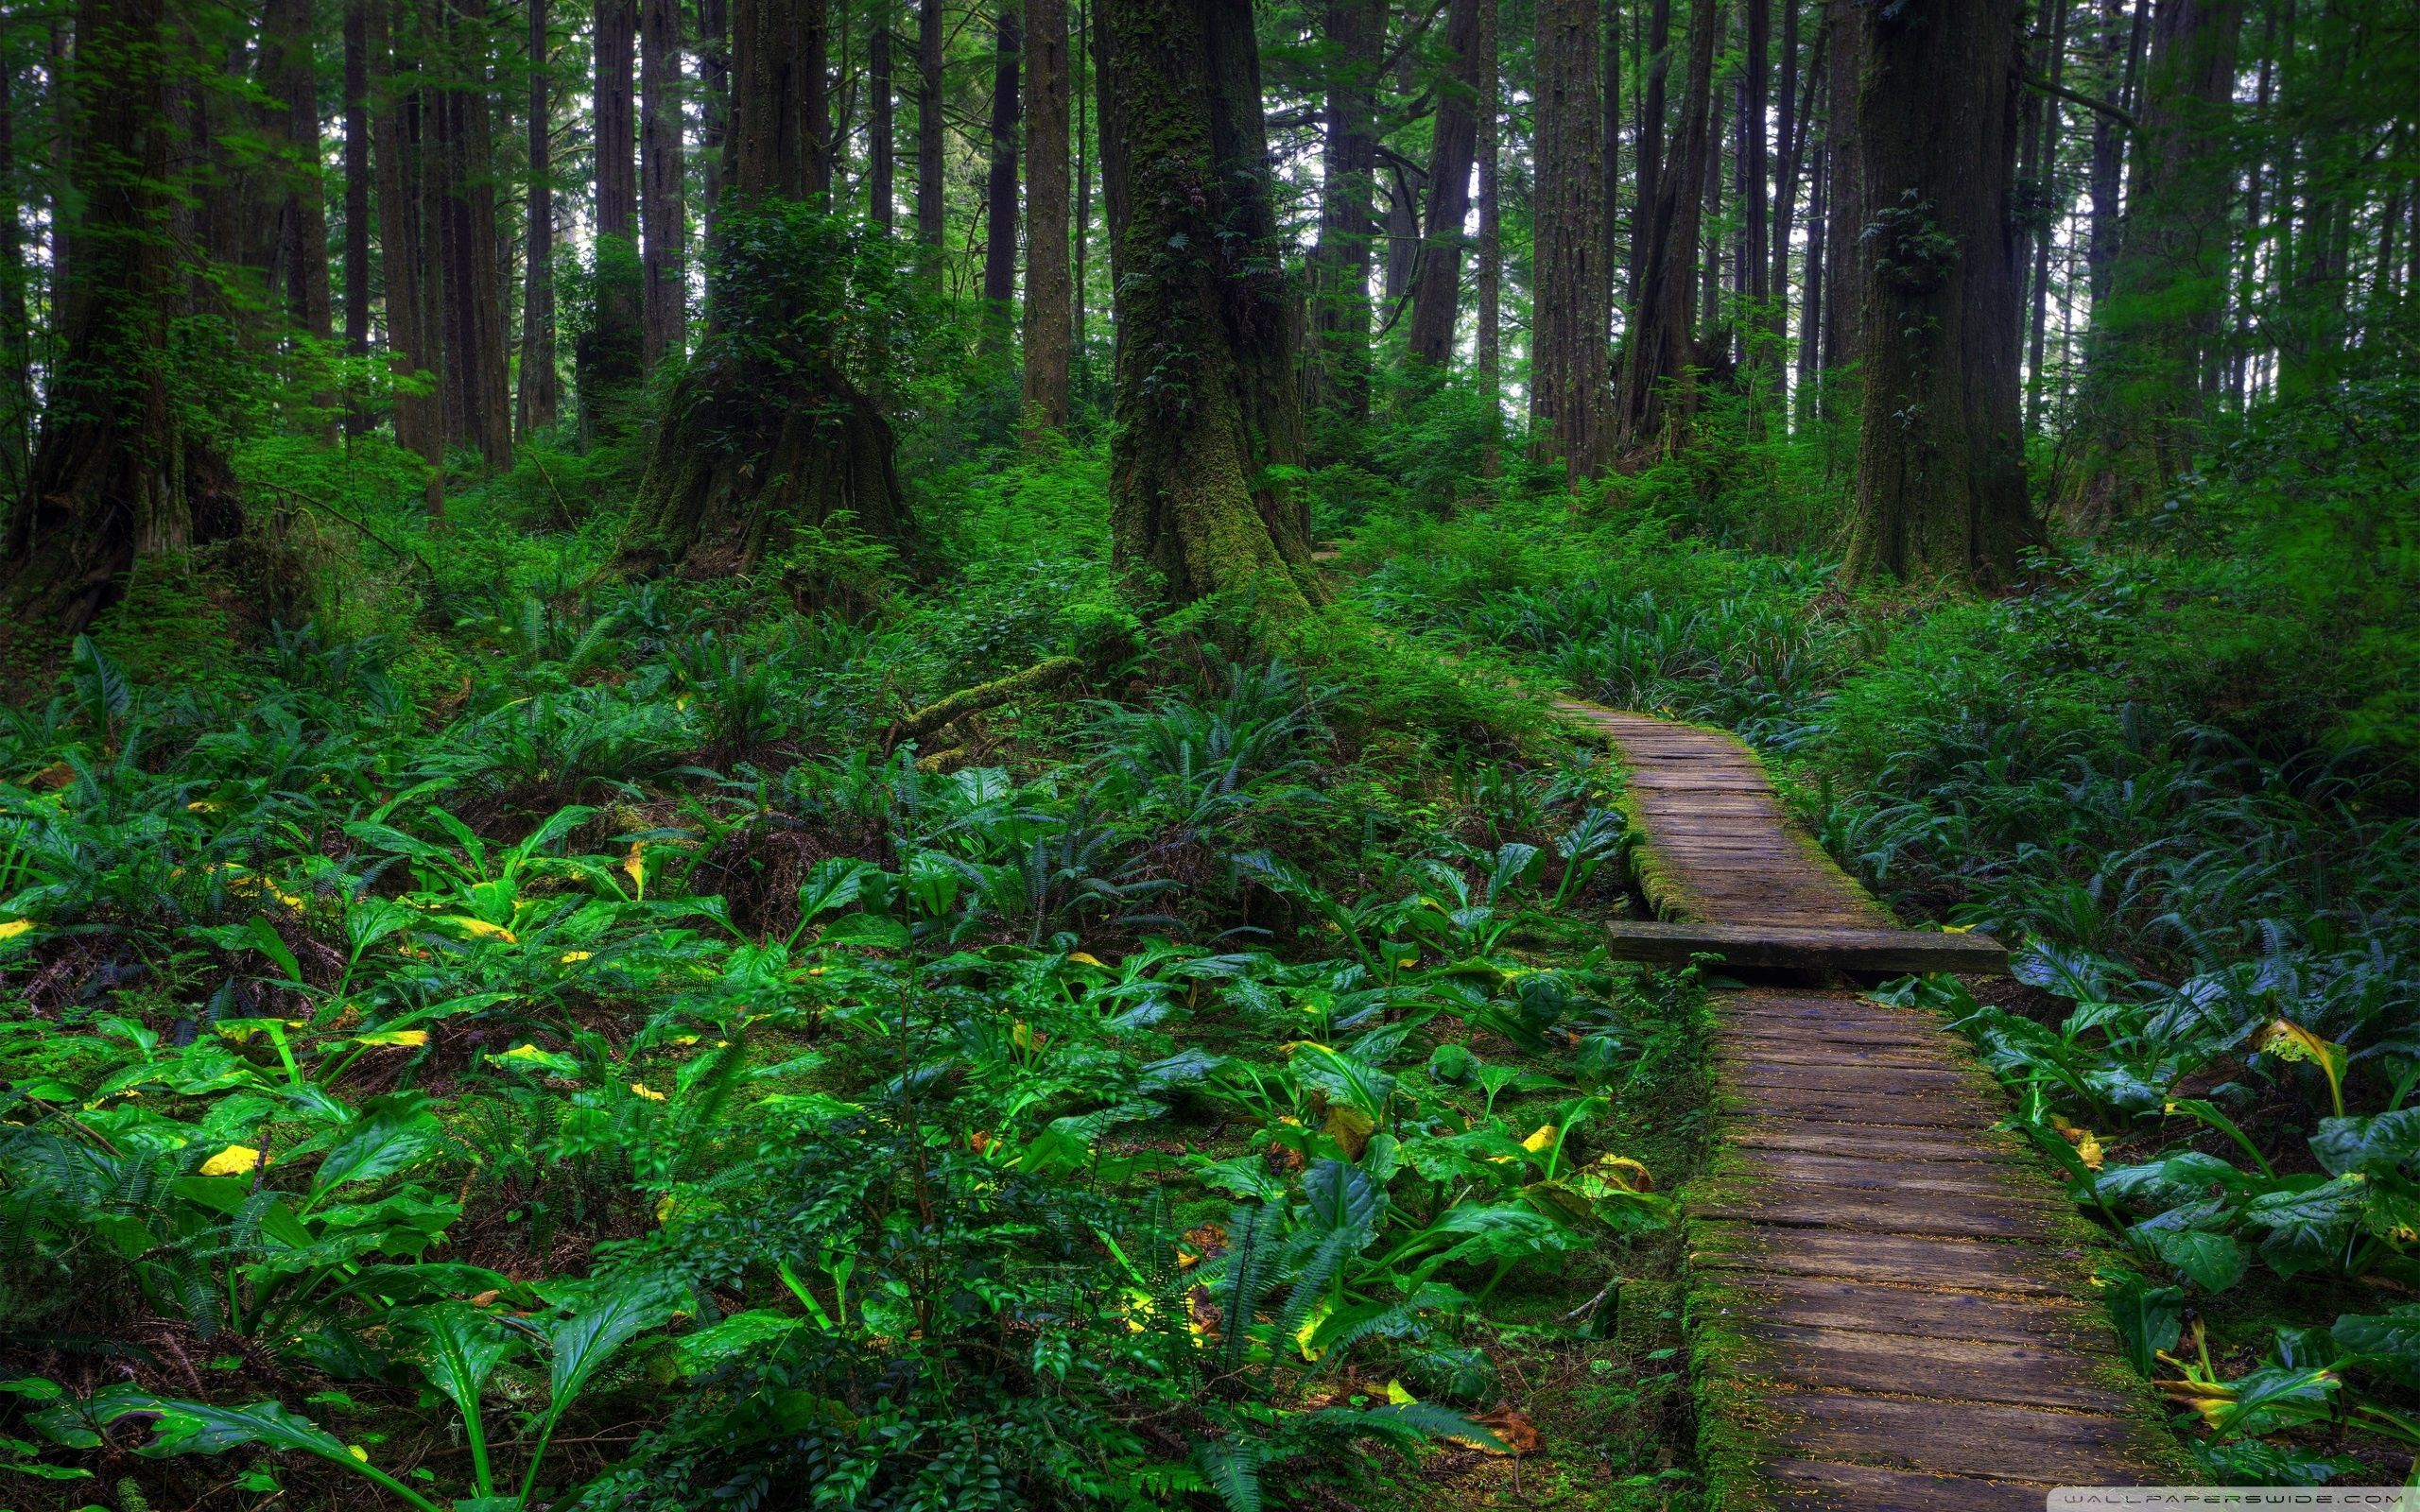 Beautiful Forest Wallpapers 06 Best Free Beautiful Forest Images For Desktop Check More At Https Www Pictor In 2020 Landscape Wallpaper Forest Wallpaper Forest Path